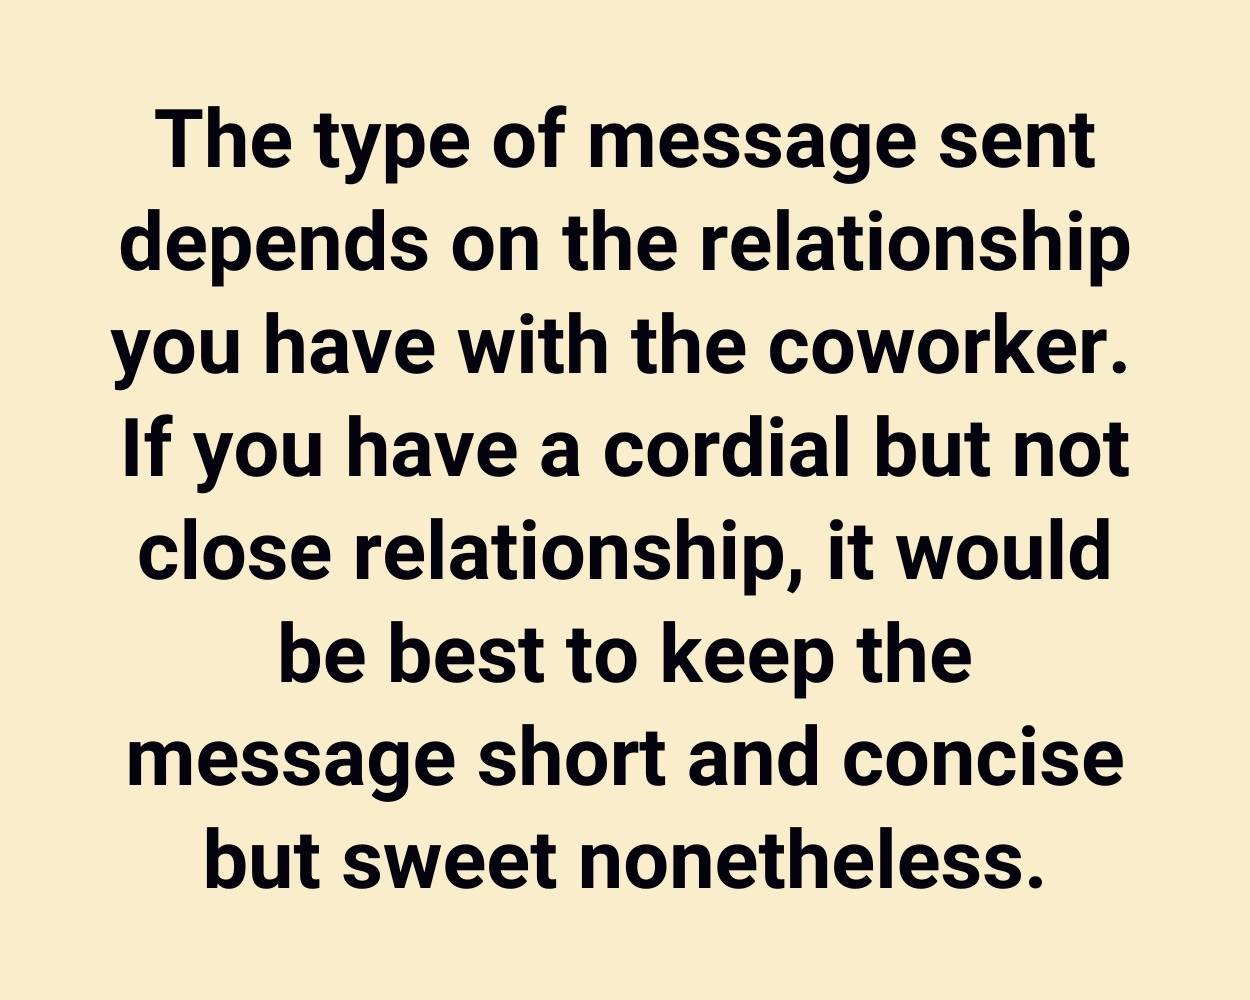 The type of message sent depends on the relationship you have with the coworker. If you have a cordial but not close relationship, it would be best to keep the message short and concise but sweet nonetheless.